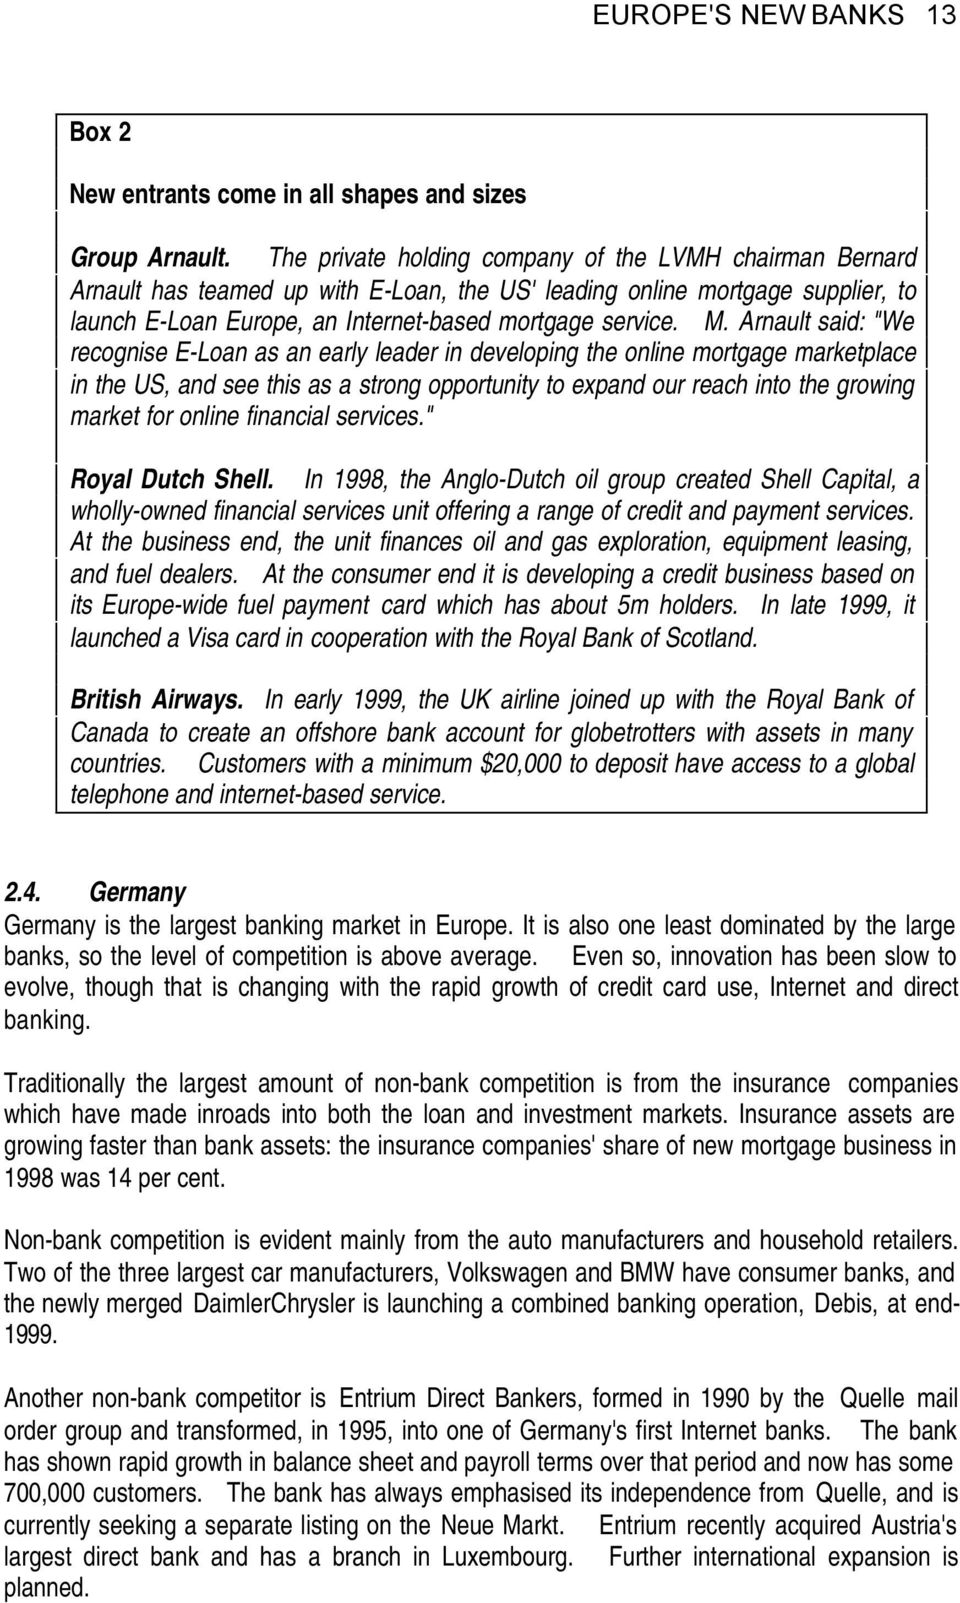 "europe's new banks the ""non-bank"" phenomenon - pdf"